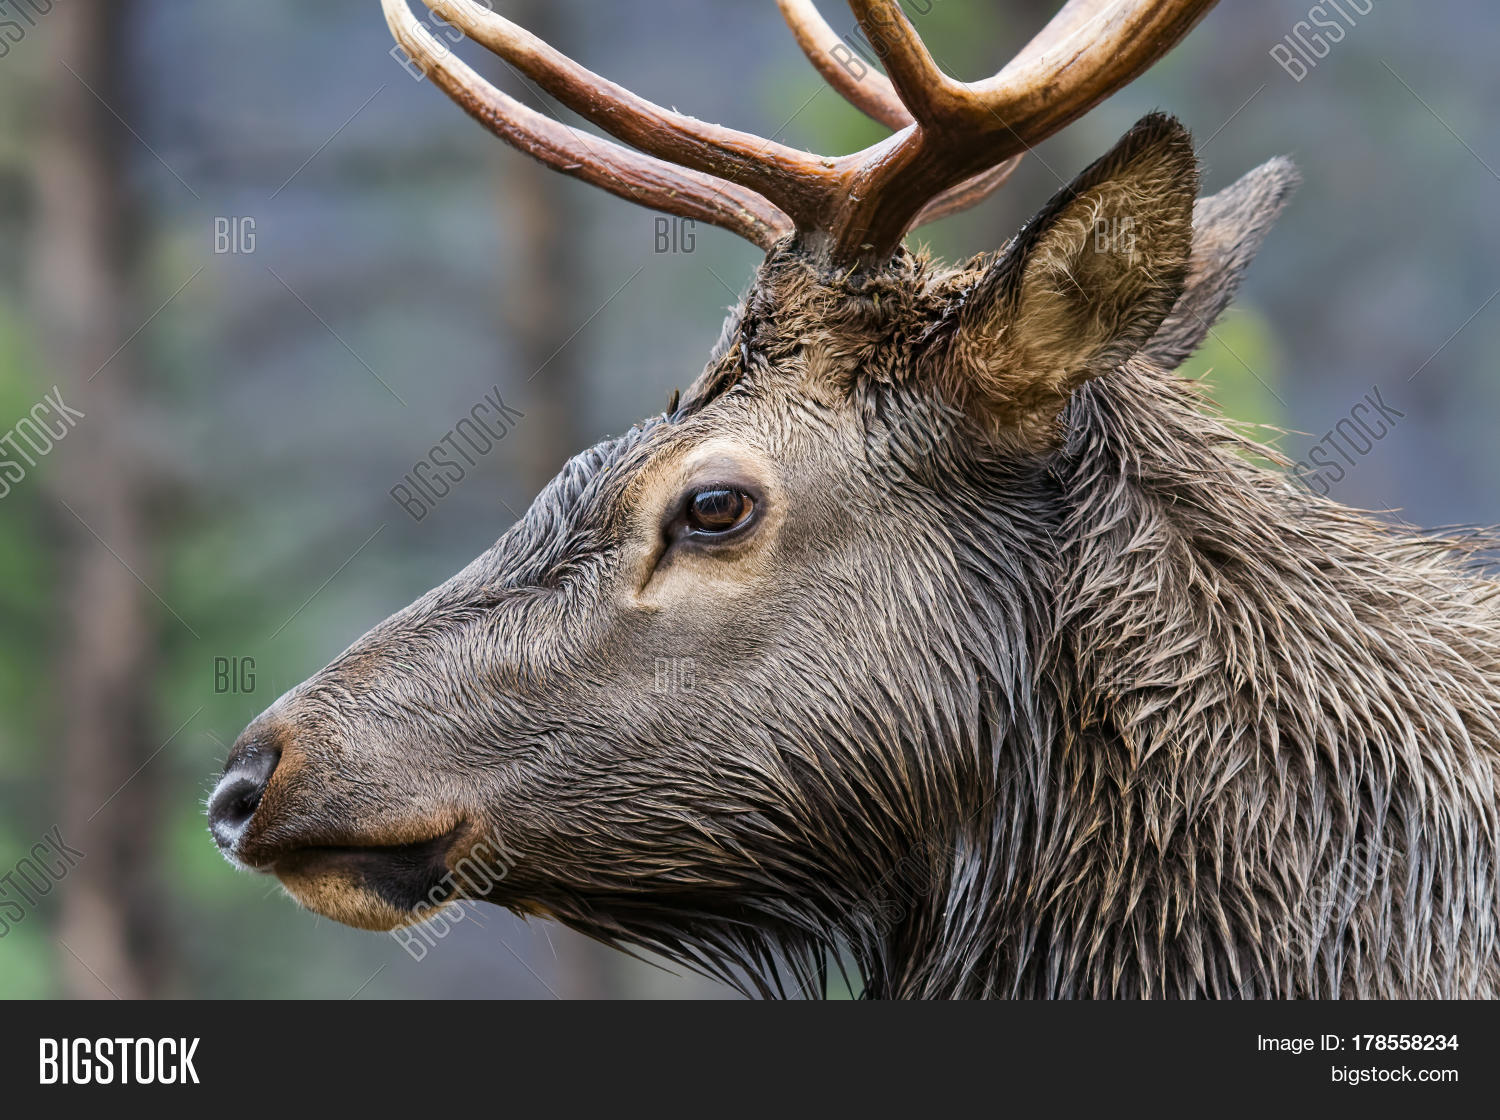 Closeup profile rocky image photo free trial bigstock closeup profile of a rocky mountain bull elk publicscrutiny Image collections